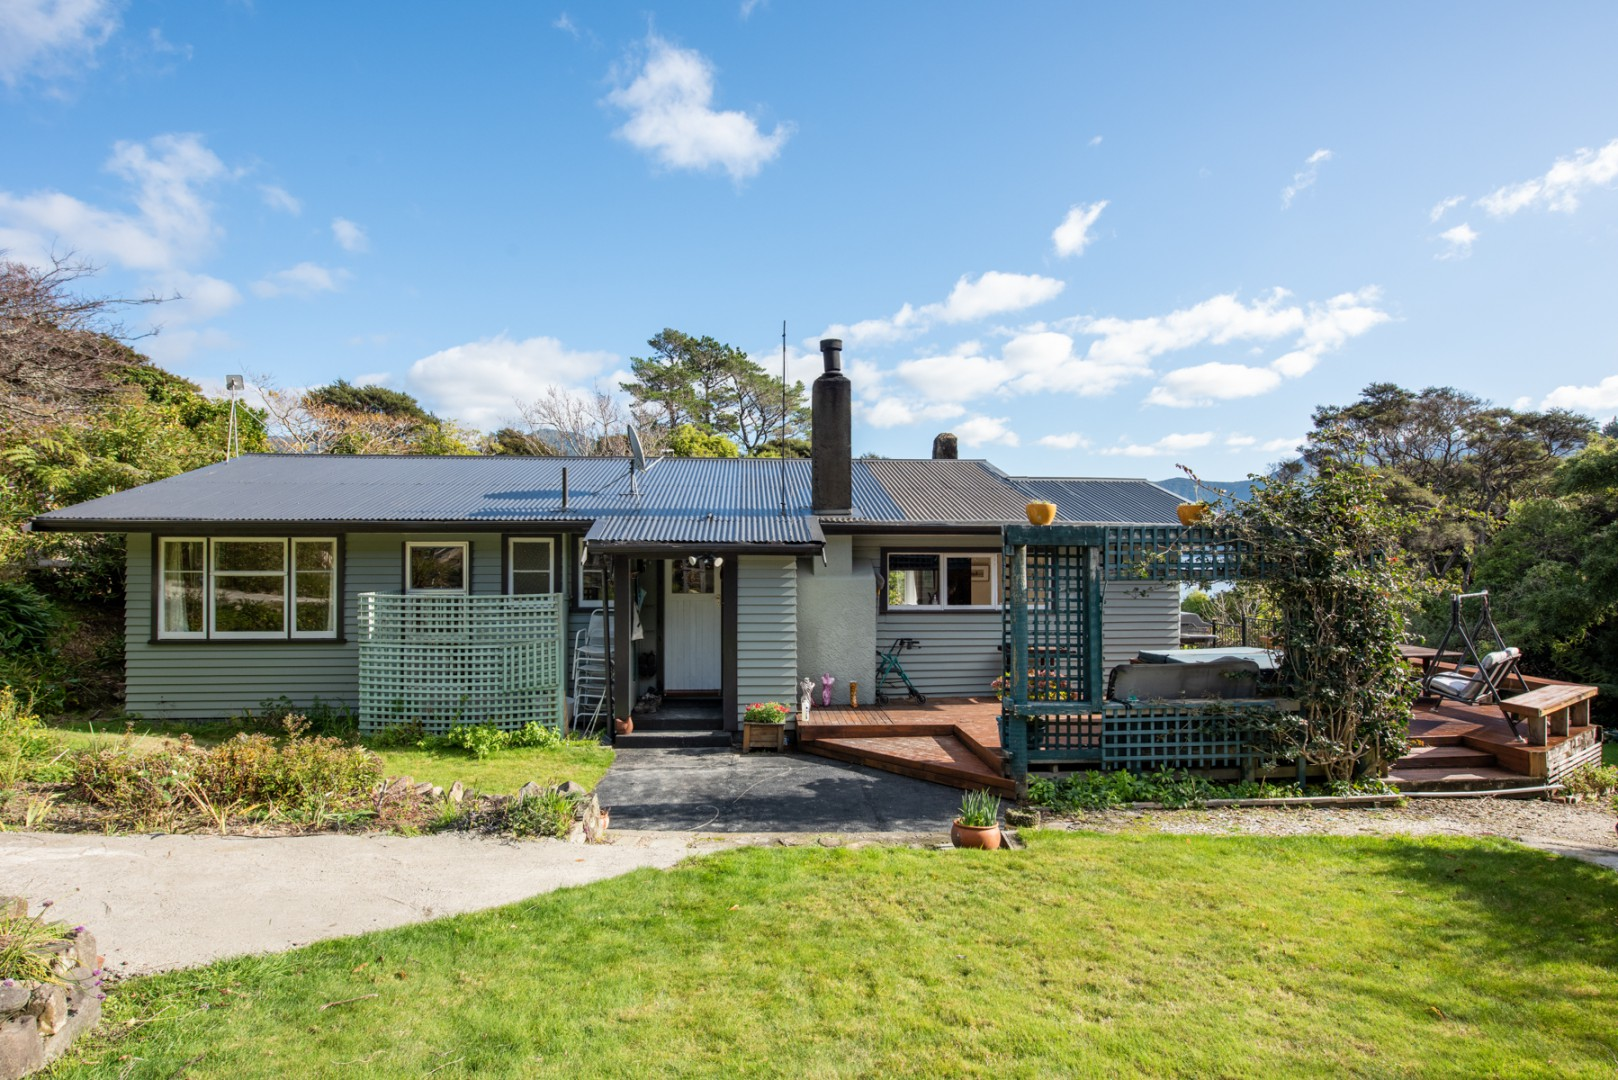 1100 Elie Bay Road - Crail Bay, Marlborough Sounds #7 -- listing/11168/f-v2.jpeg